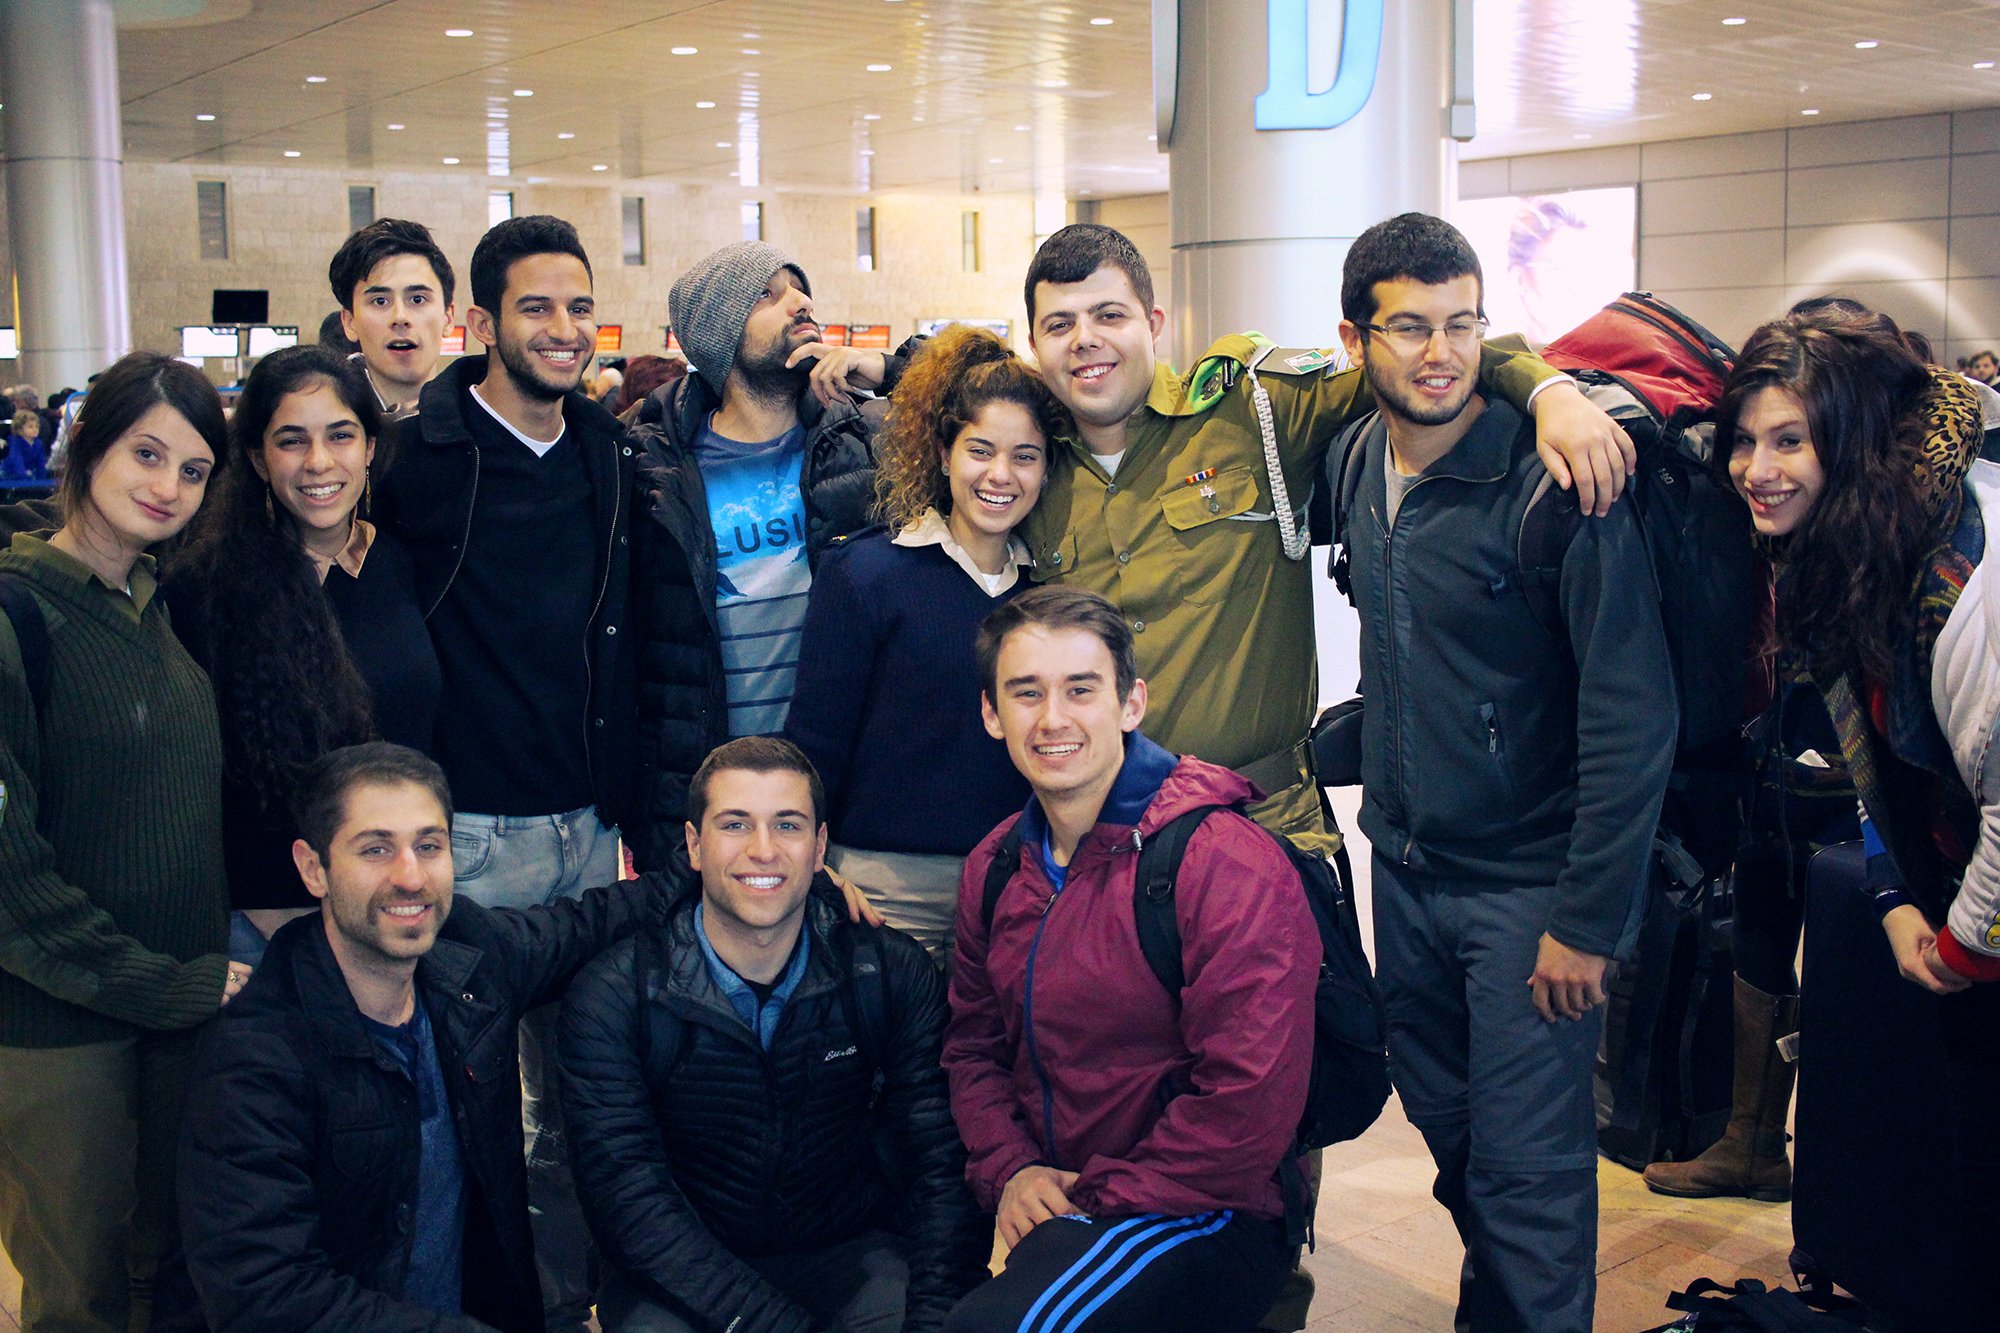 Several members of the Shorashim #Bus636 group heading back to the USA after a week-long trip through Israel, December 2016.